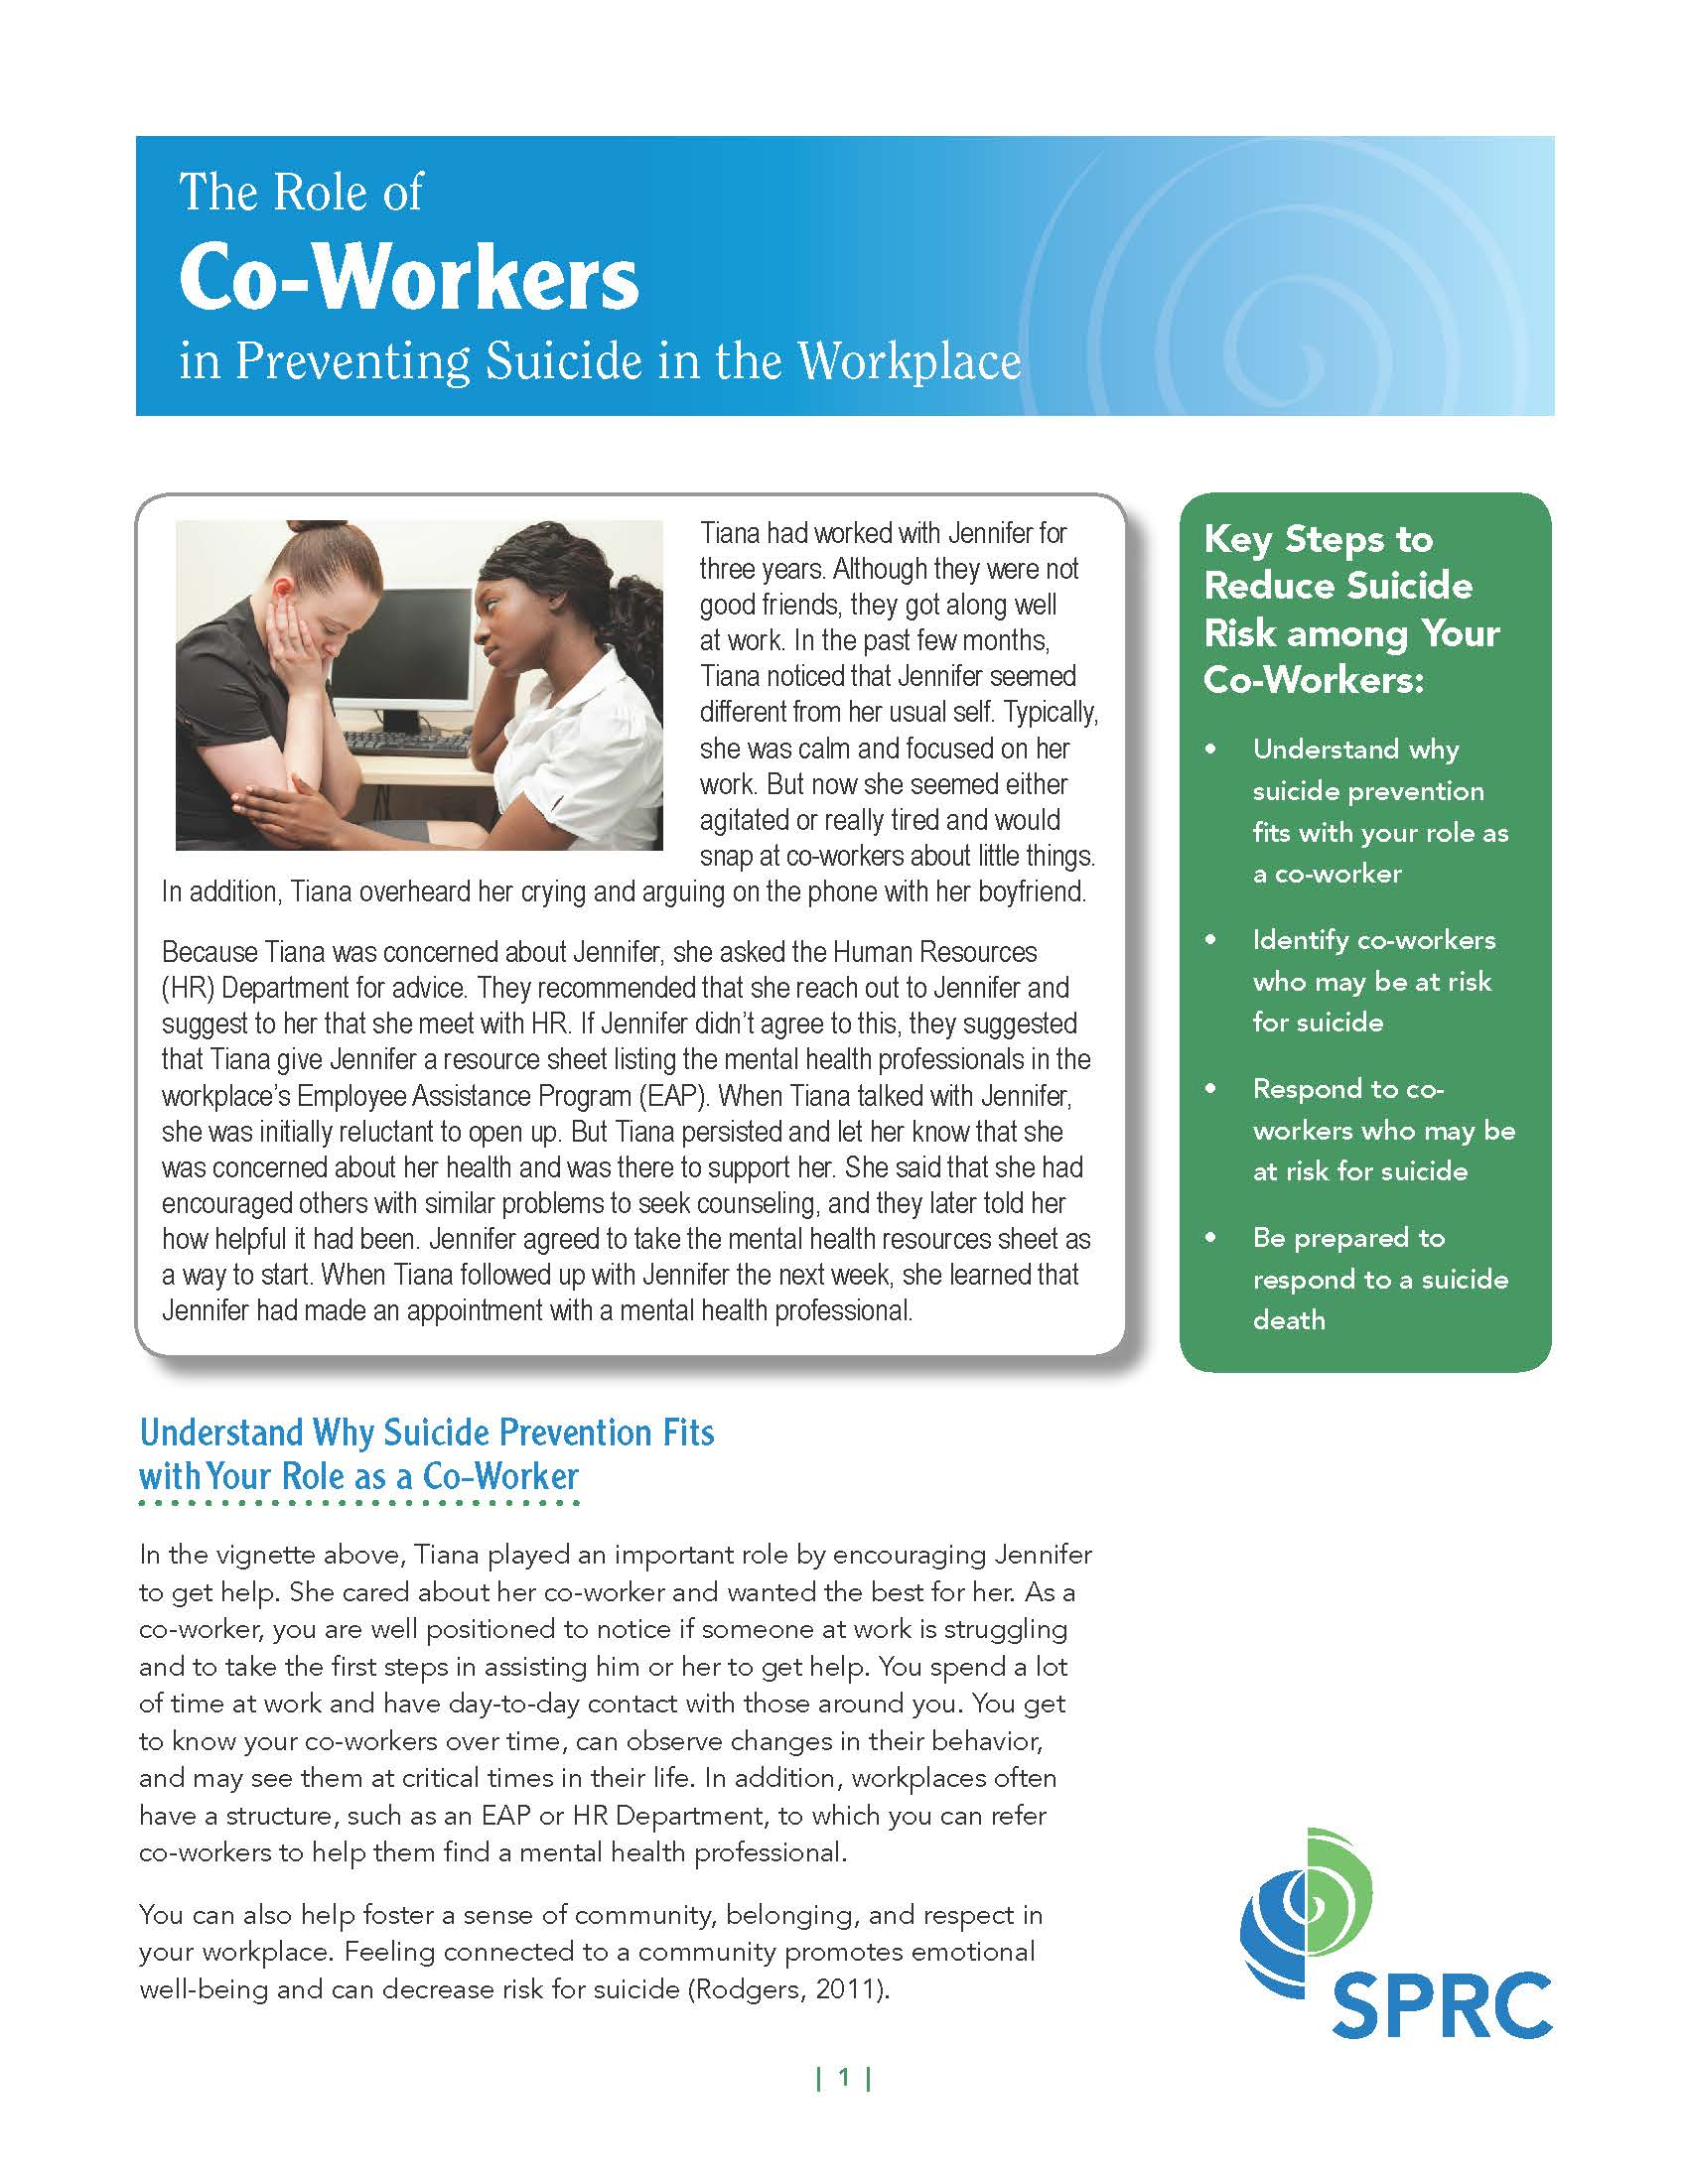 The Role of Co-Workers in Preventing Suicide